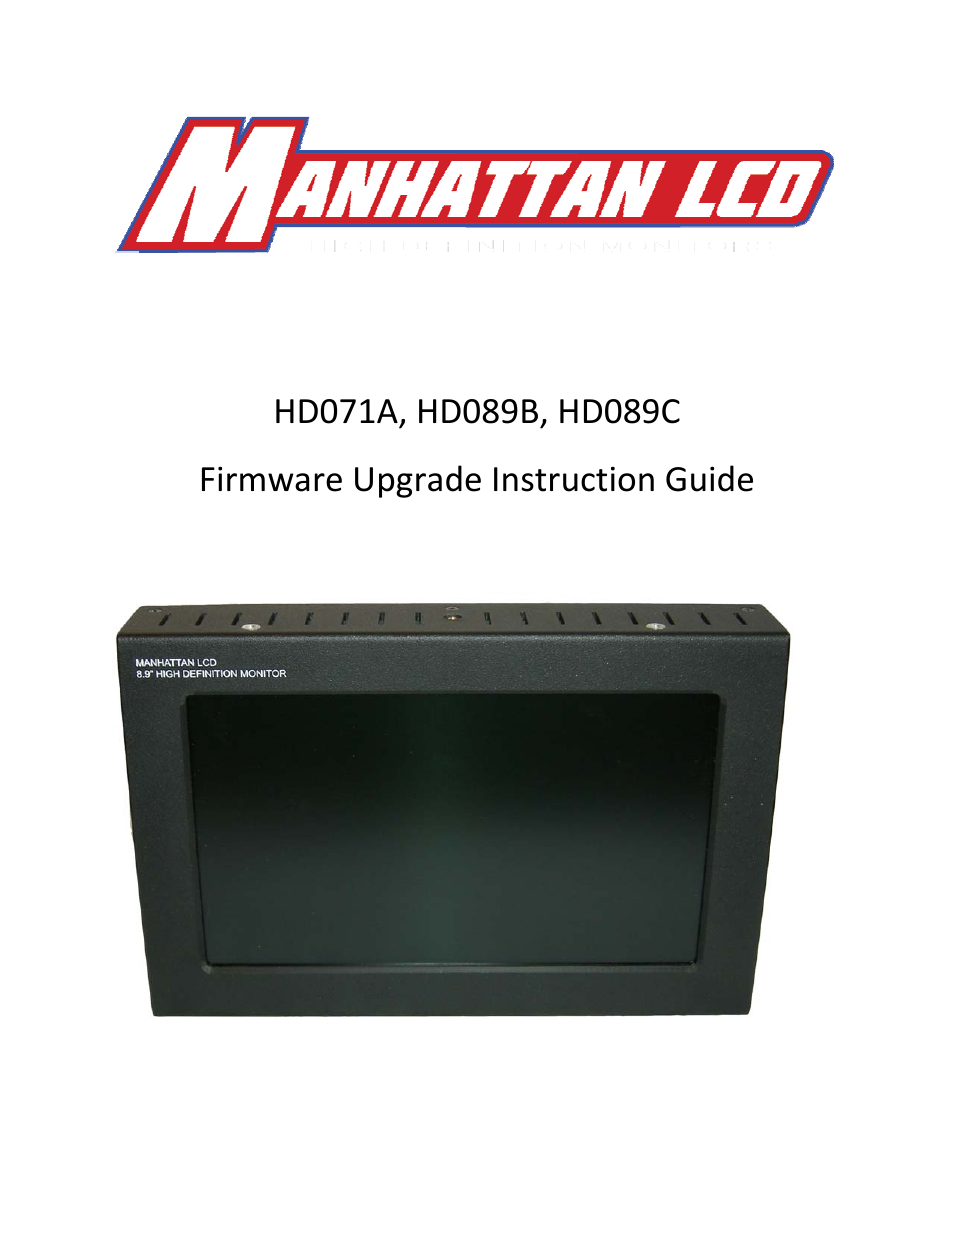 Manhattan LCD HD089C Firmware Upgrade Instructions User Manual | 8 pages |  Also for: HD089B Firmware Upgrade Instructions, HD071A Firmware Upgrade ...